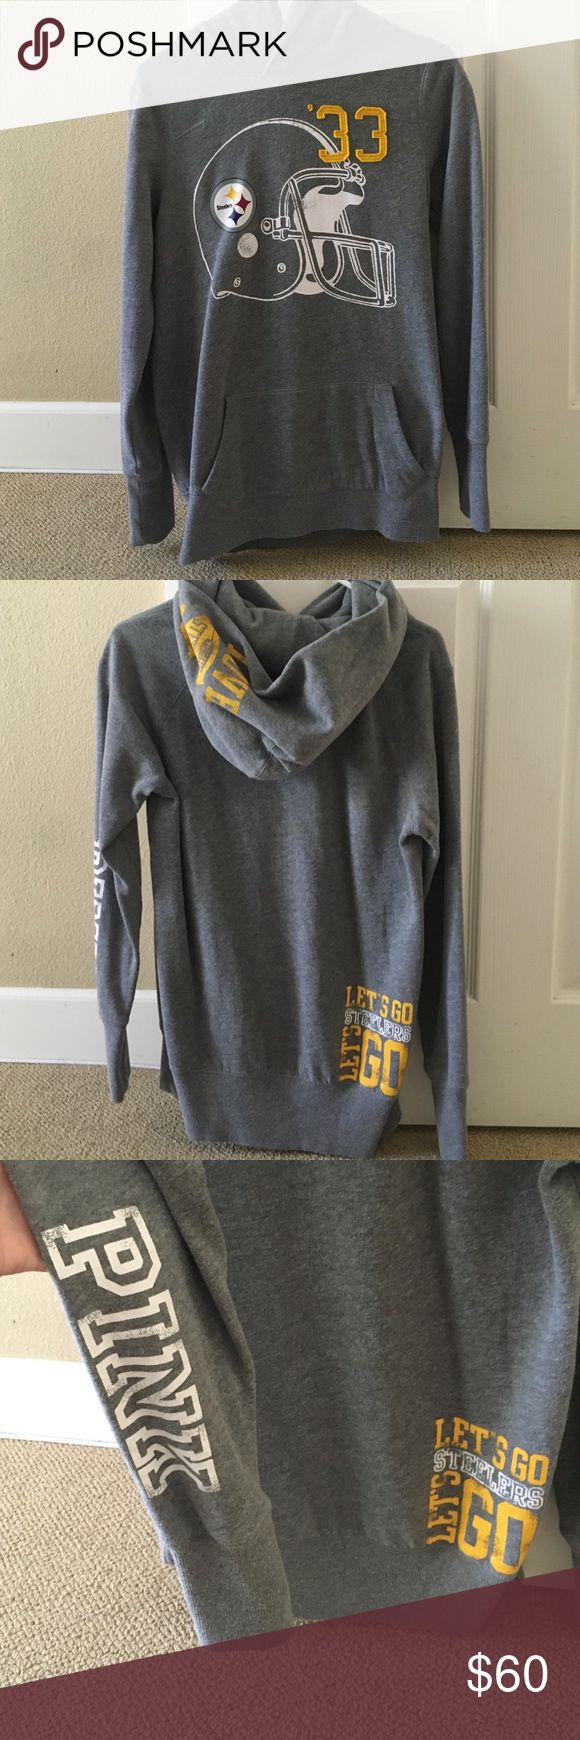 Victoria's Secret size medium Steelers sweatshirt Only worn once size medium Grey Victorias Secret Pittsburgh Steelers hooded sweatshirt. Pink logo down the sleeve, steelers helmet on the front, love steelers logo on the hood and logo on the lower back as well.very cute and in perfect condition. Victoria's Secret Tops Sweatshirts & Hoodies